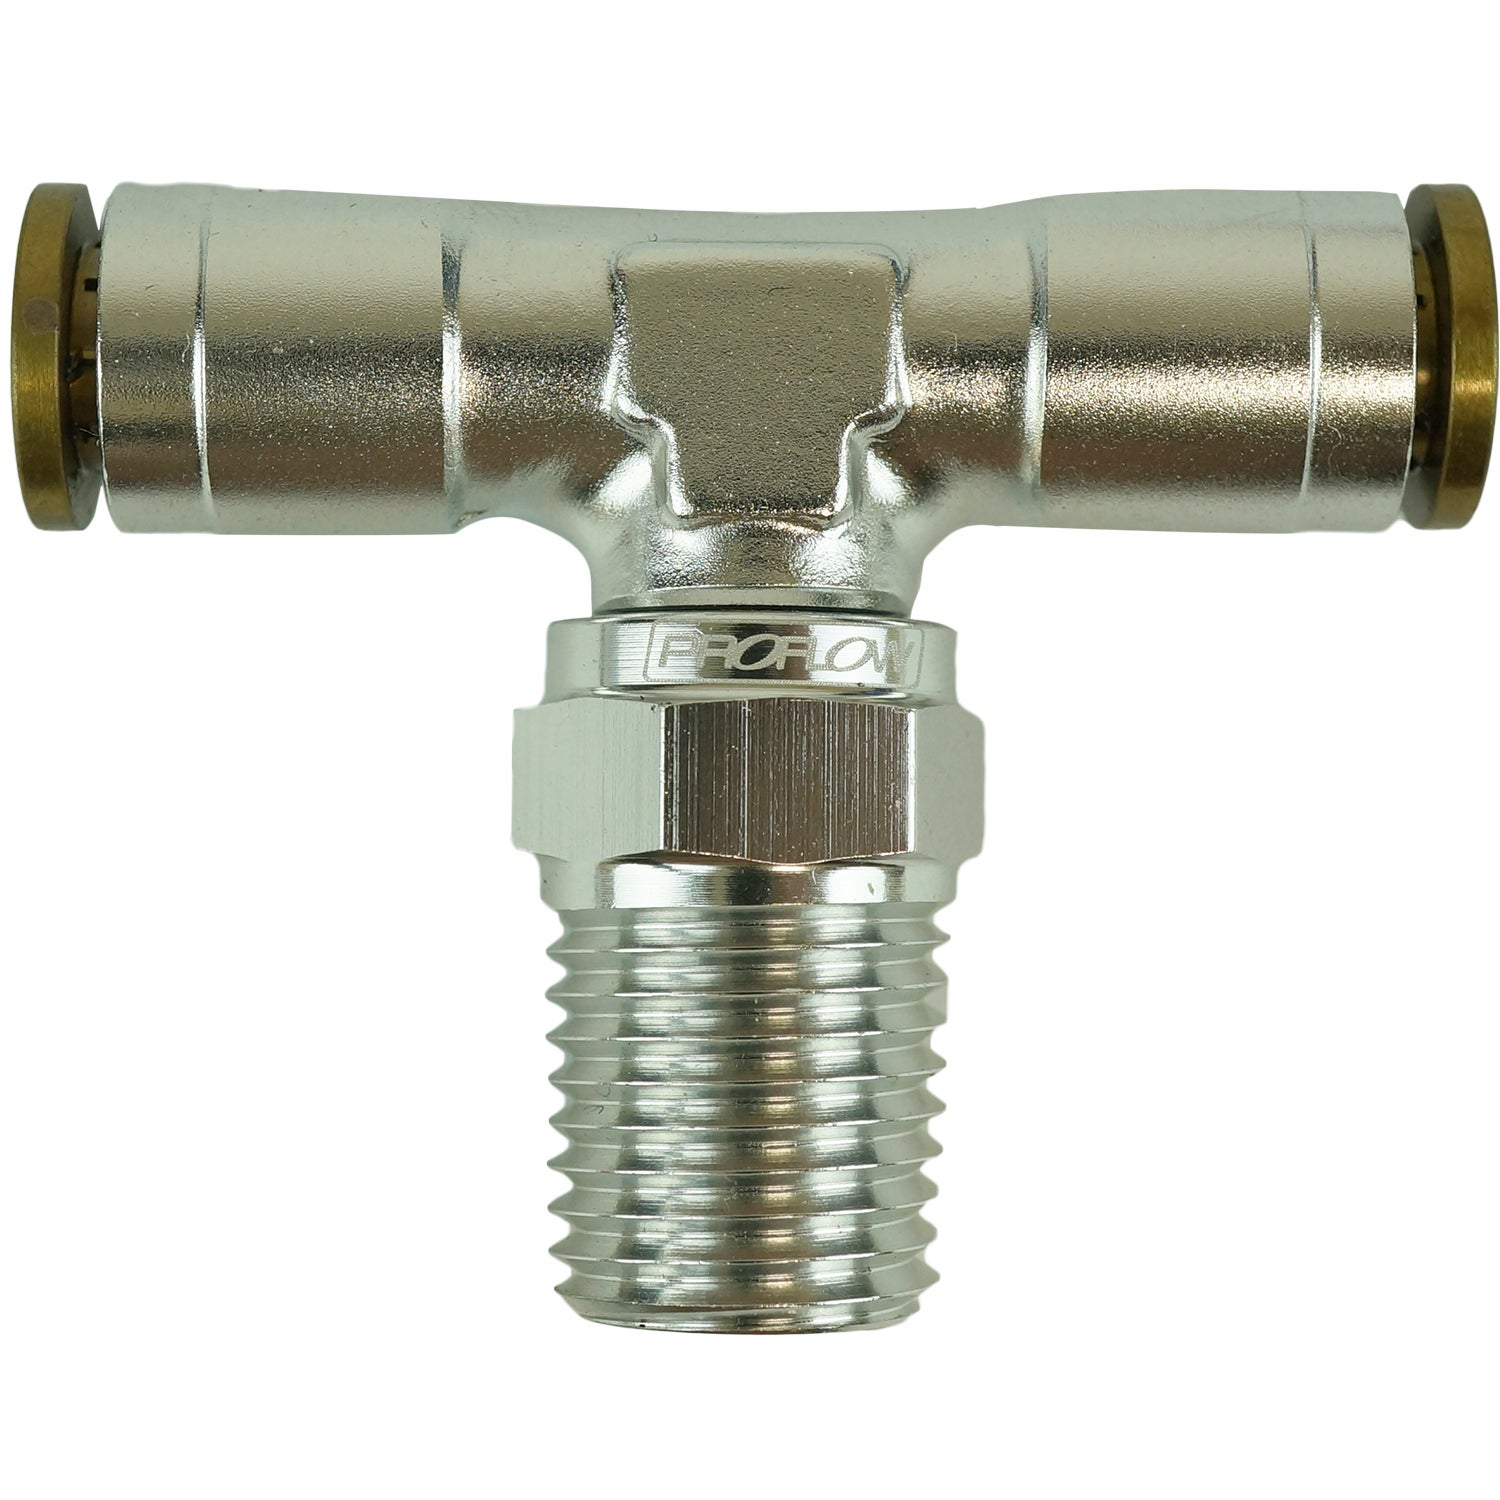 Proflow Fitting Push Release Tee 1/4in. Tube To 1/4in. NPT Silver